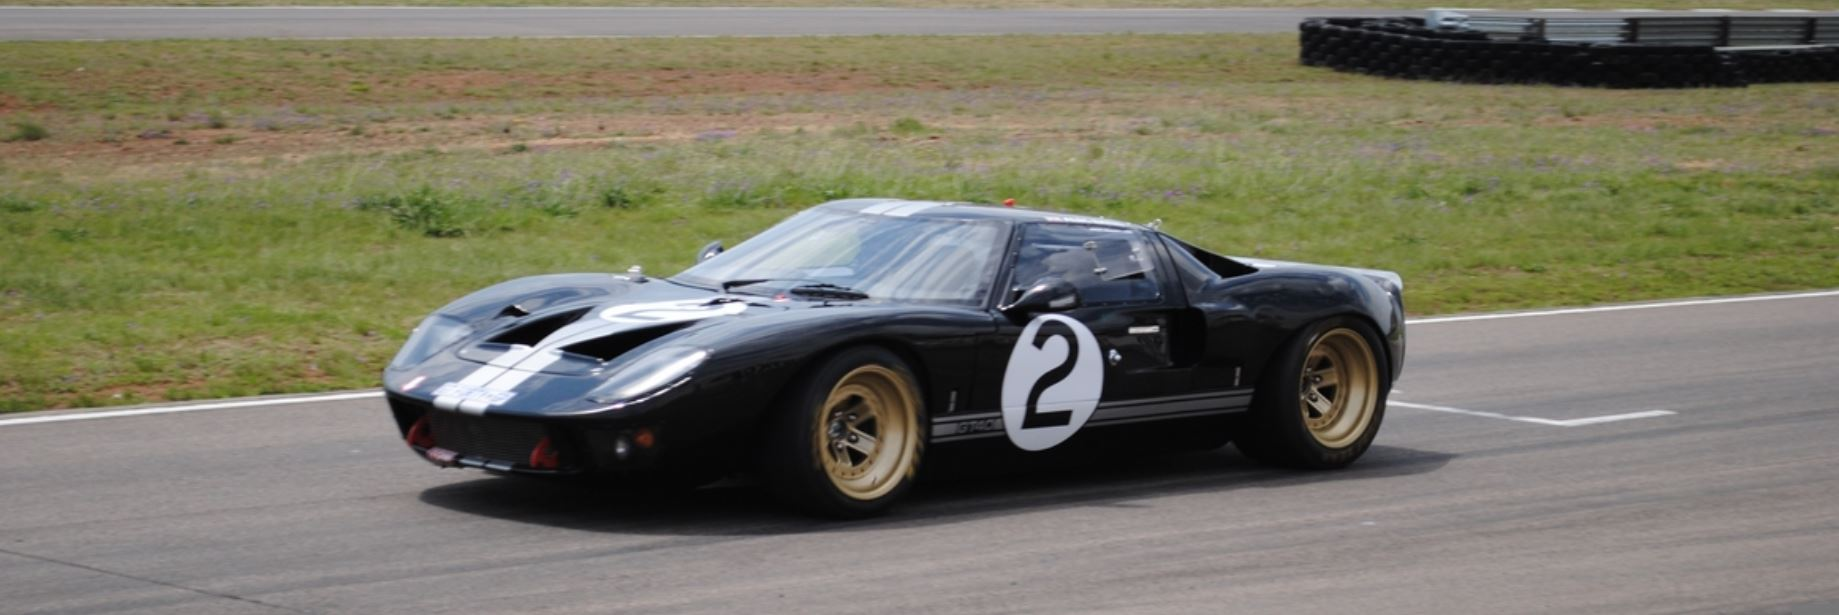 GT40 track